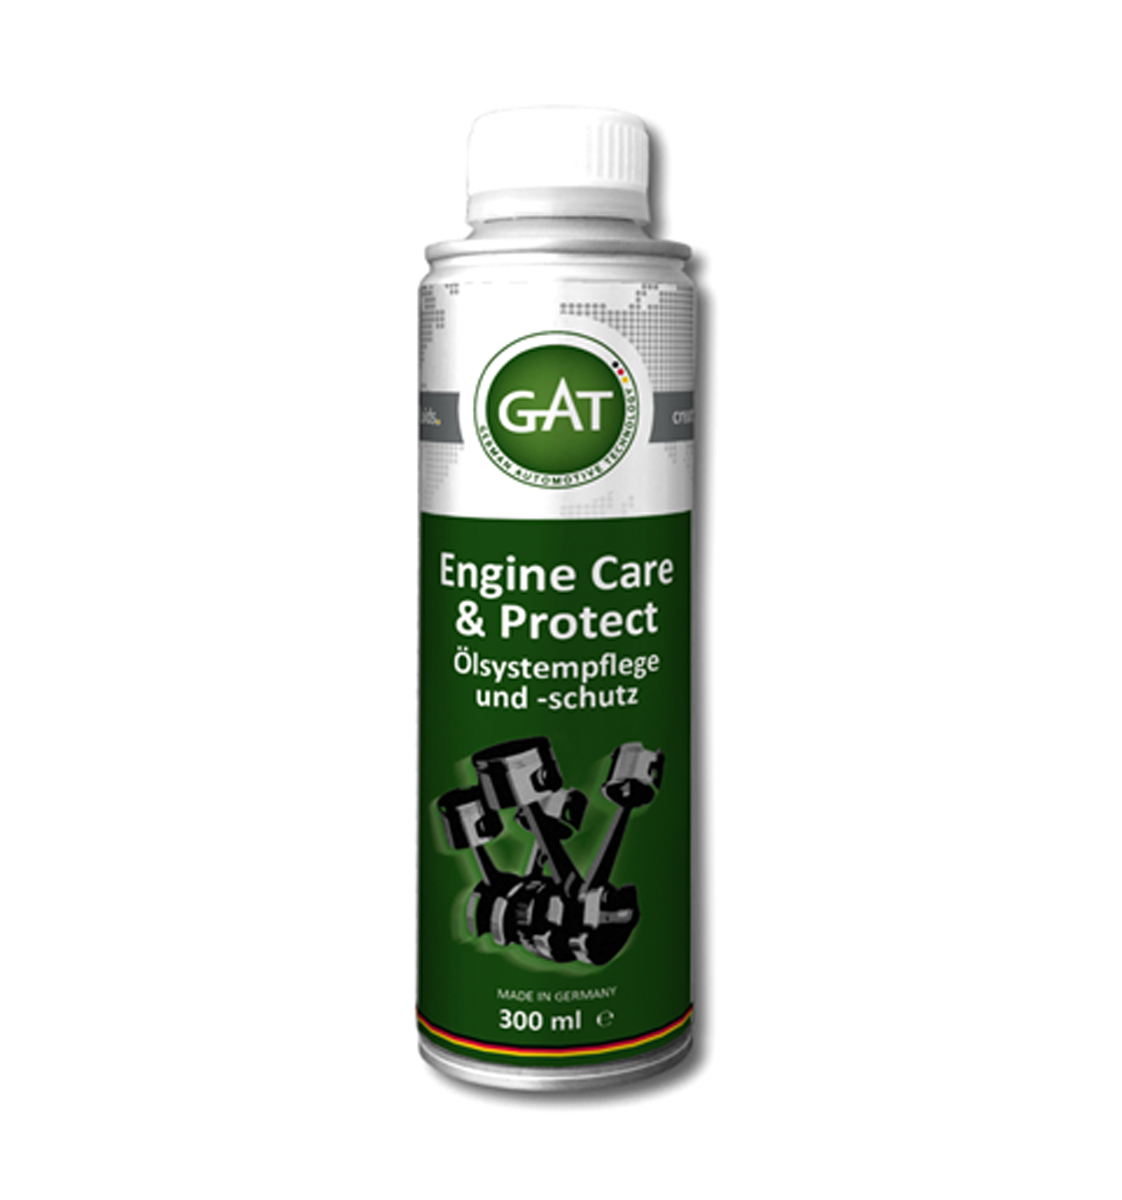 Engine Care - Protect 300ml